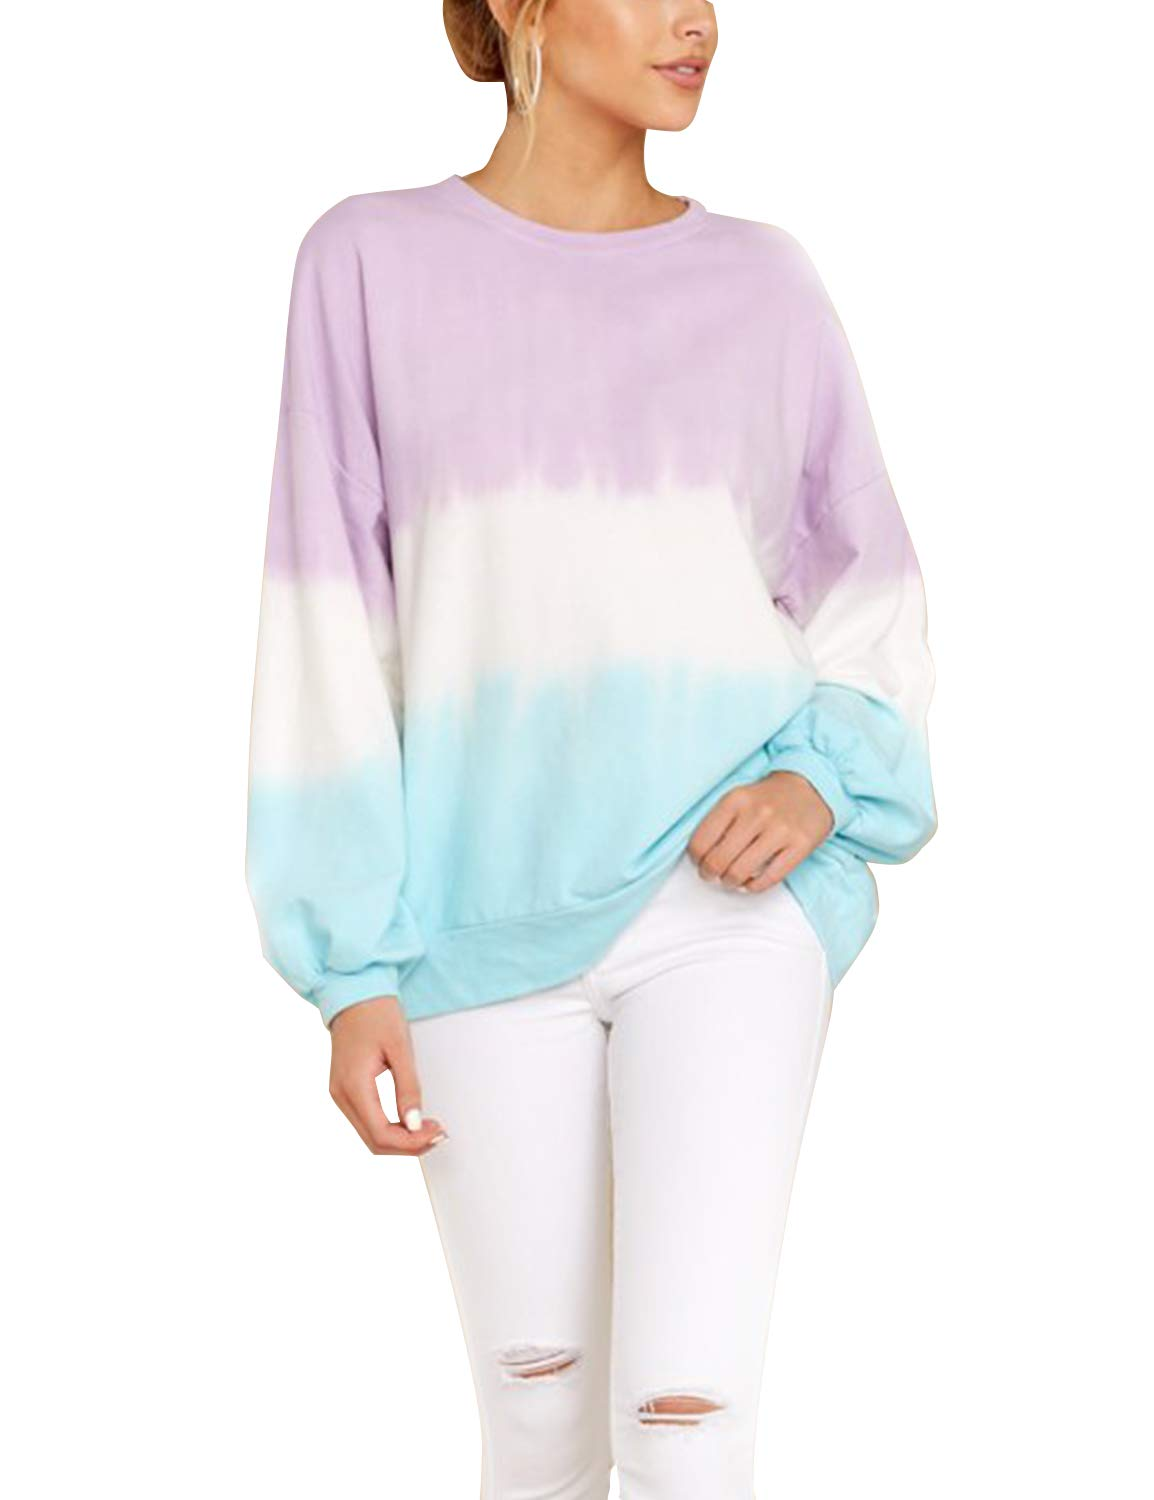 Blooming Jelly Womens Long Sleeve Gradient Tie Dye Pullover Sweatshirt Hoodies